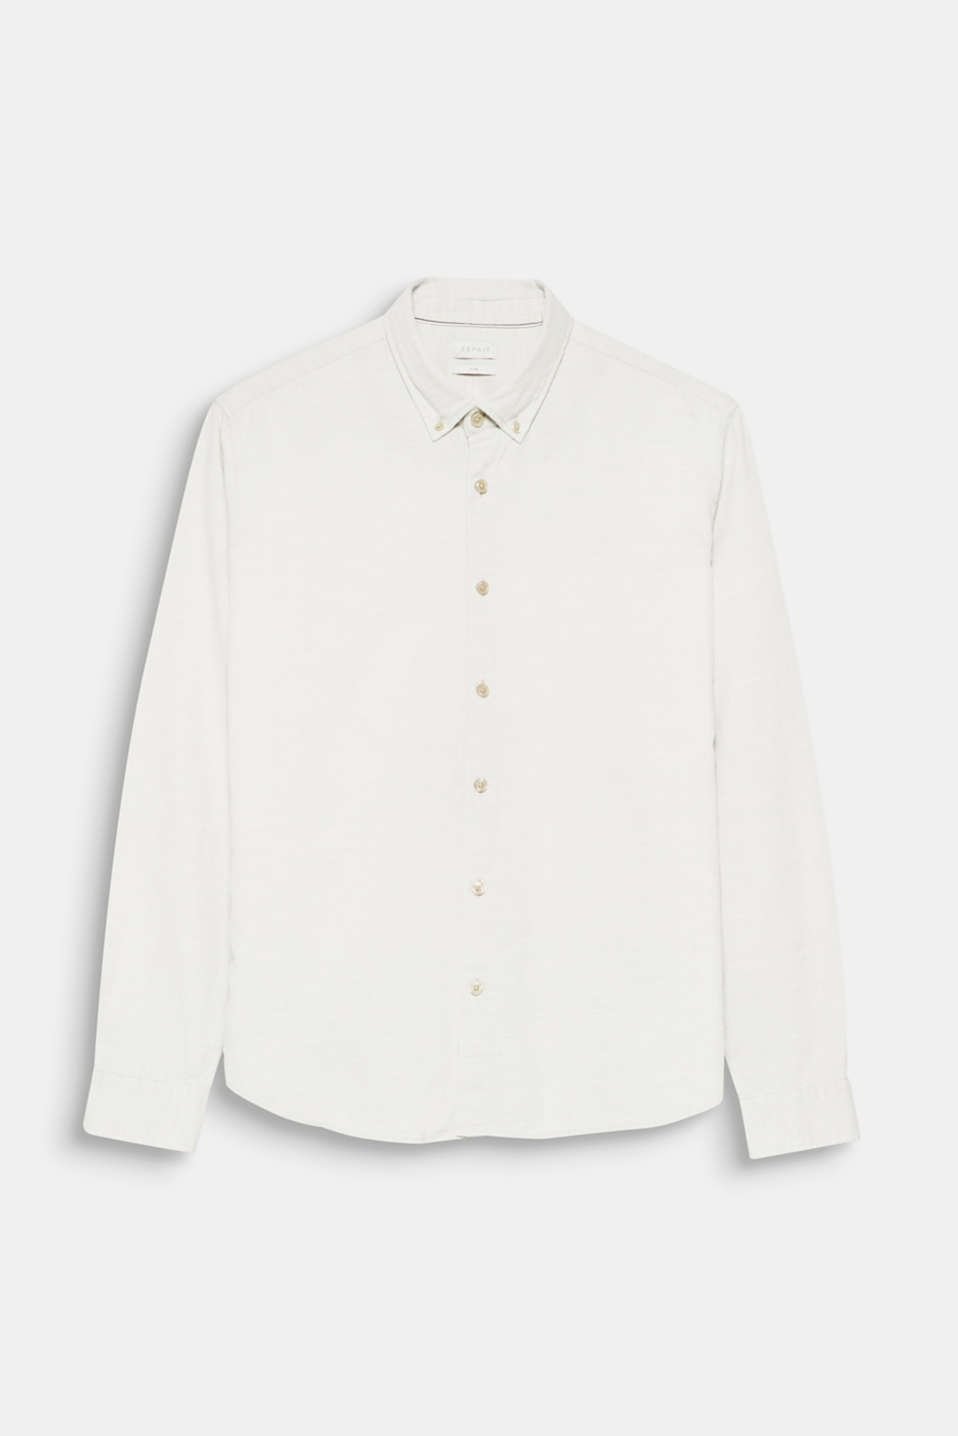 This classic, button-down shirt with a fine, woven texture and melange finish gives your wardrobe a fashionable update.